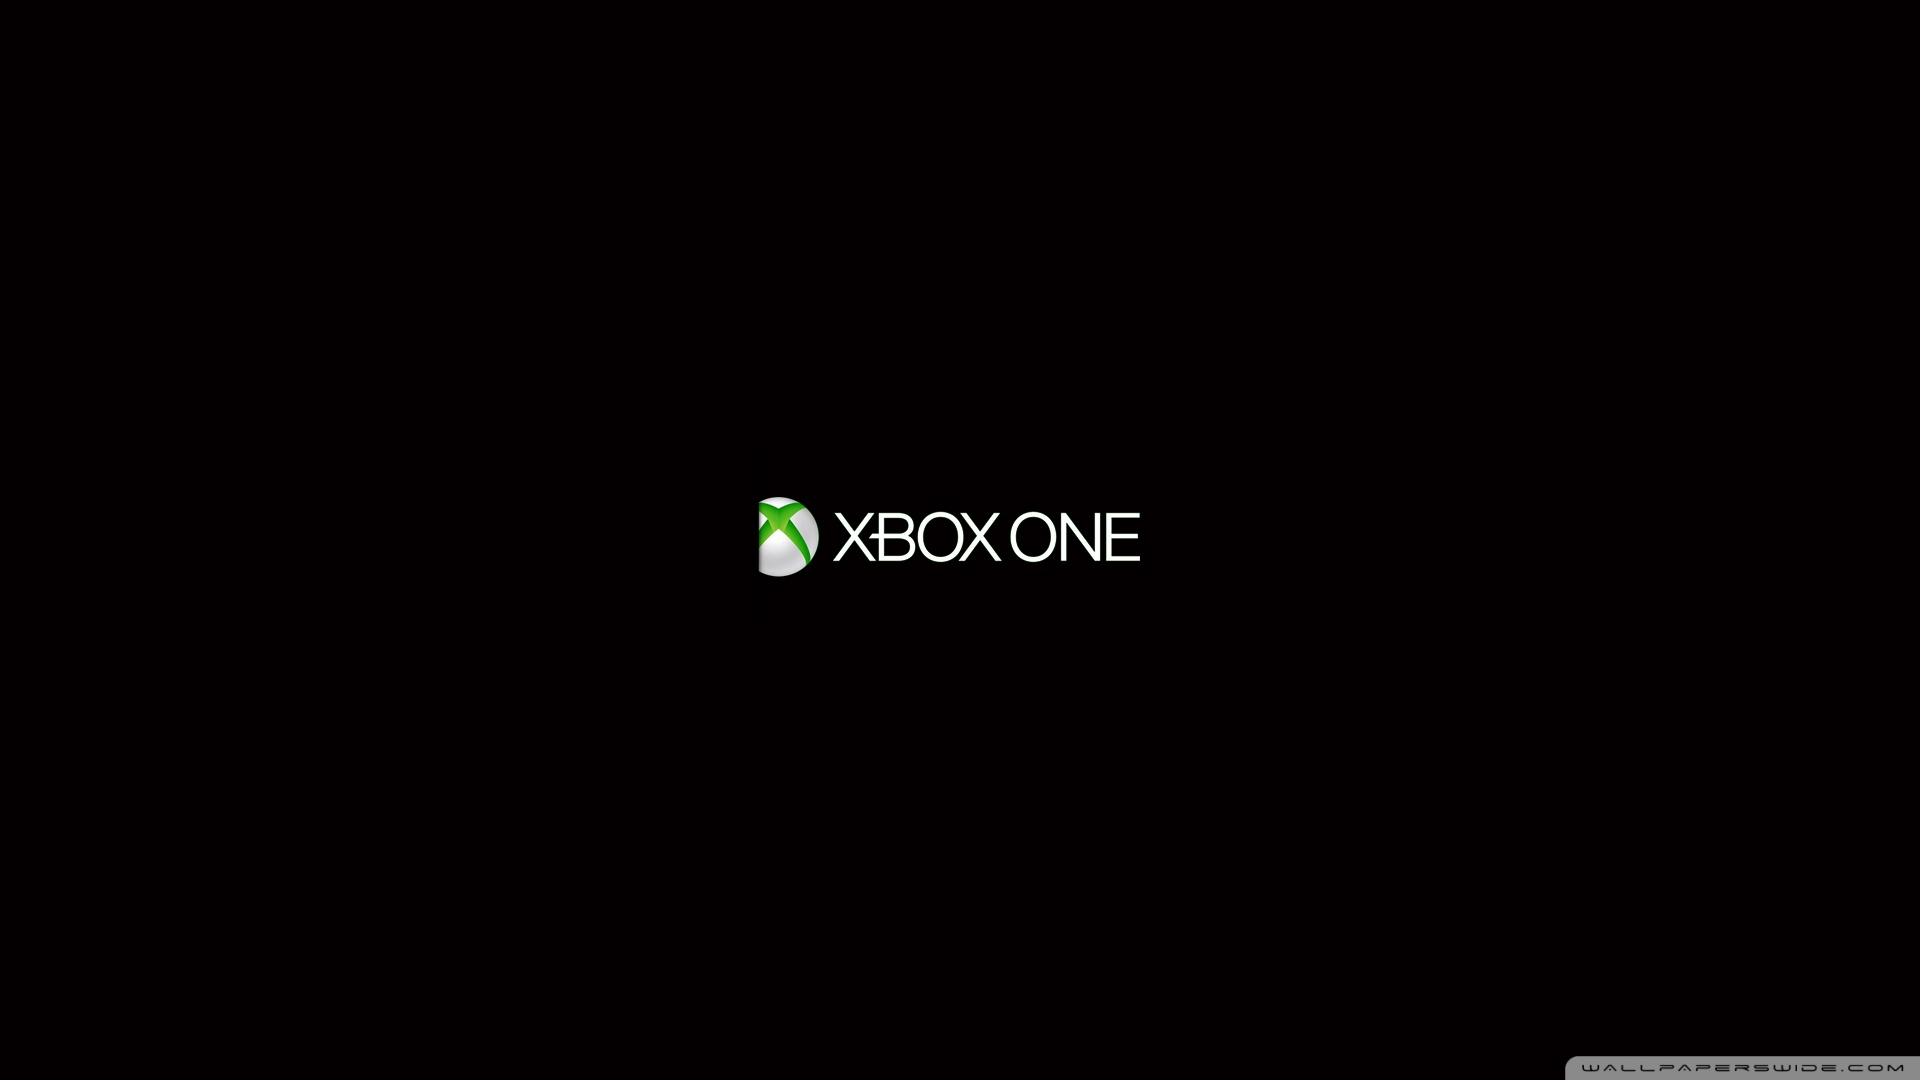 Xbox one wallpaper 1920x1080 68049 - Xbox one wallpaper 1920x1080 ...